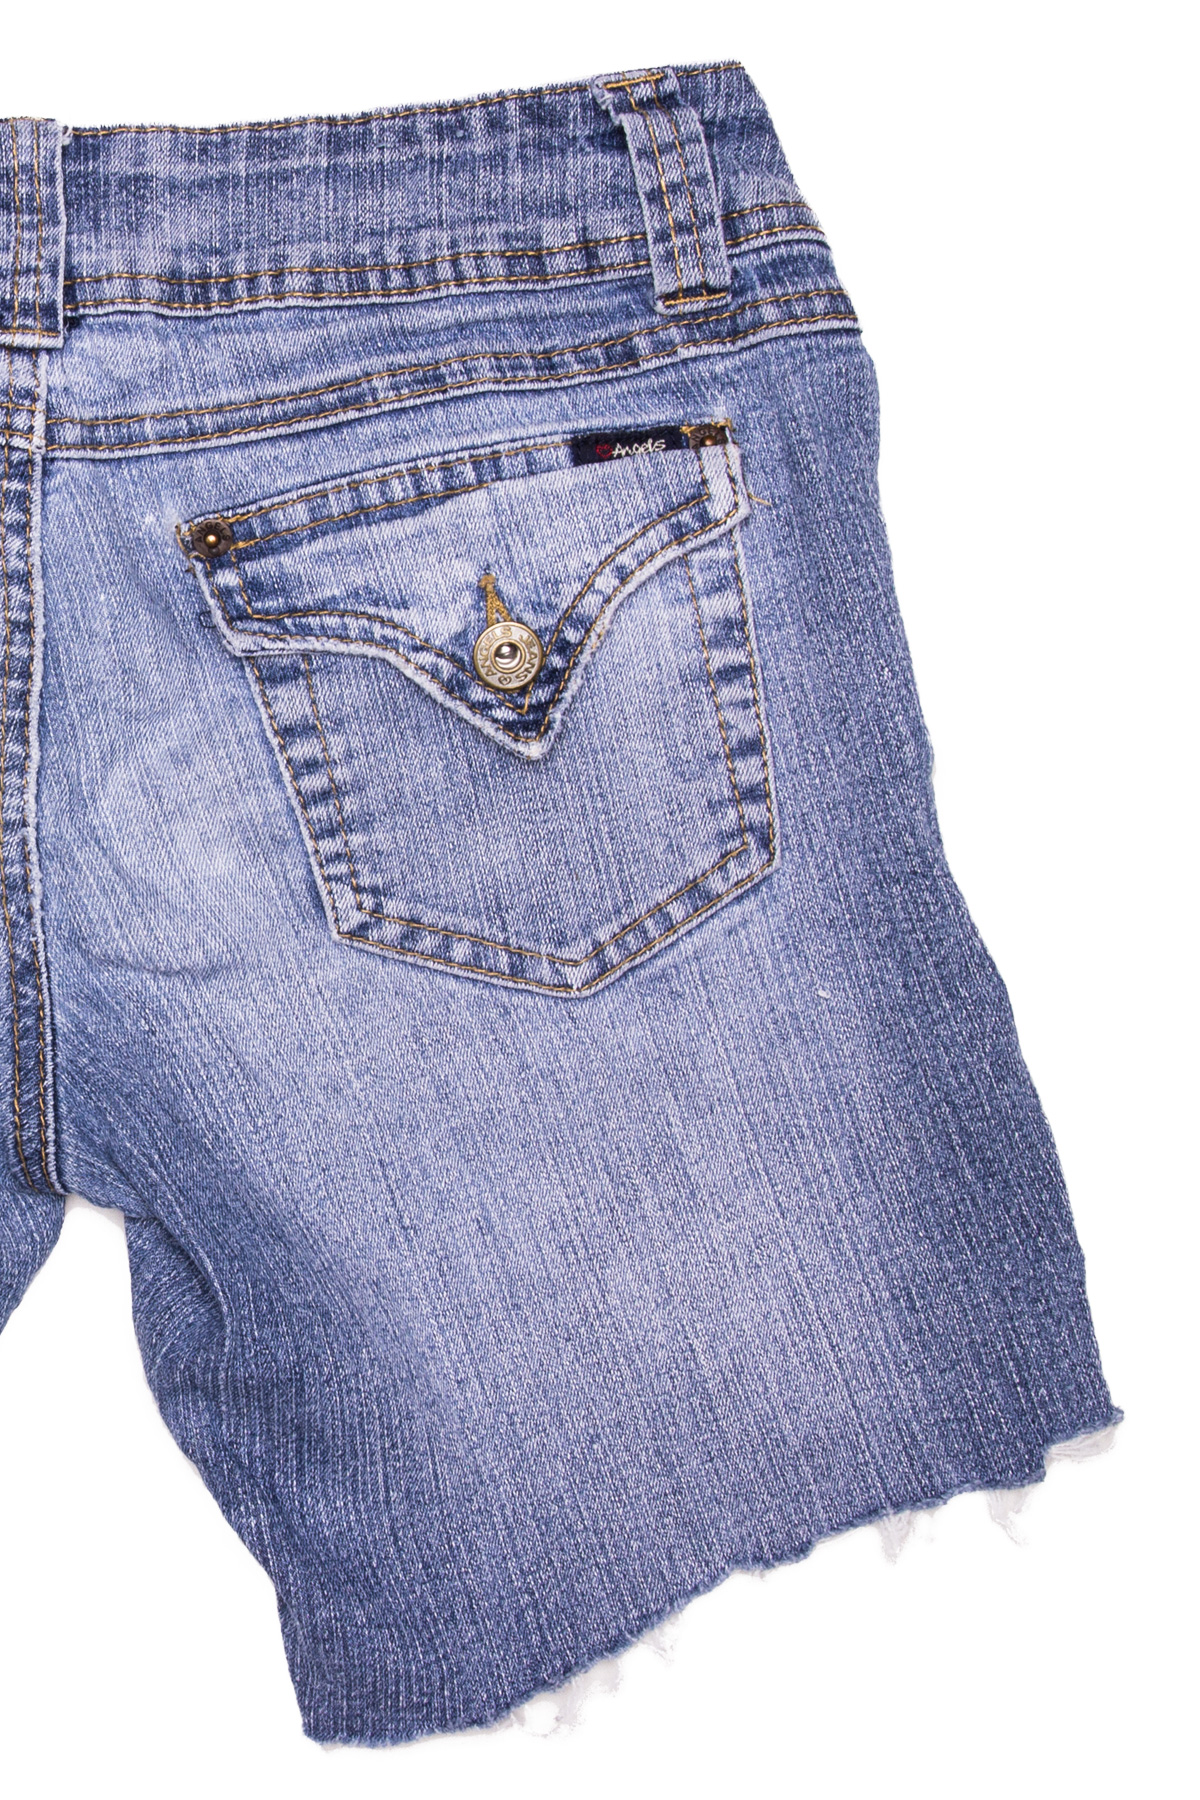 Cut Off Denim Shorts 30